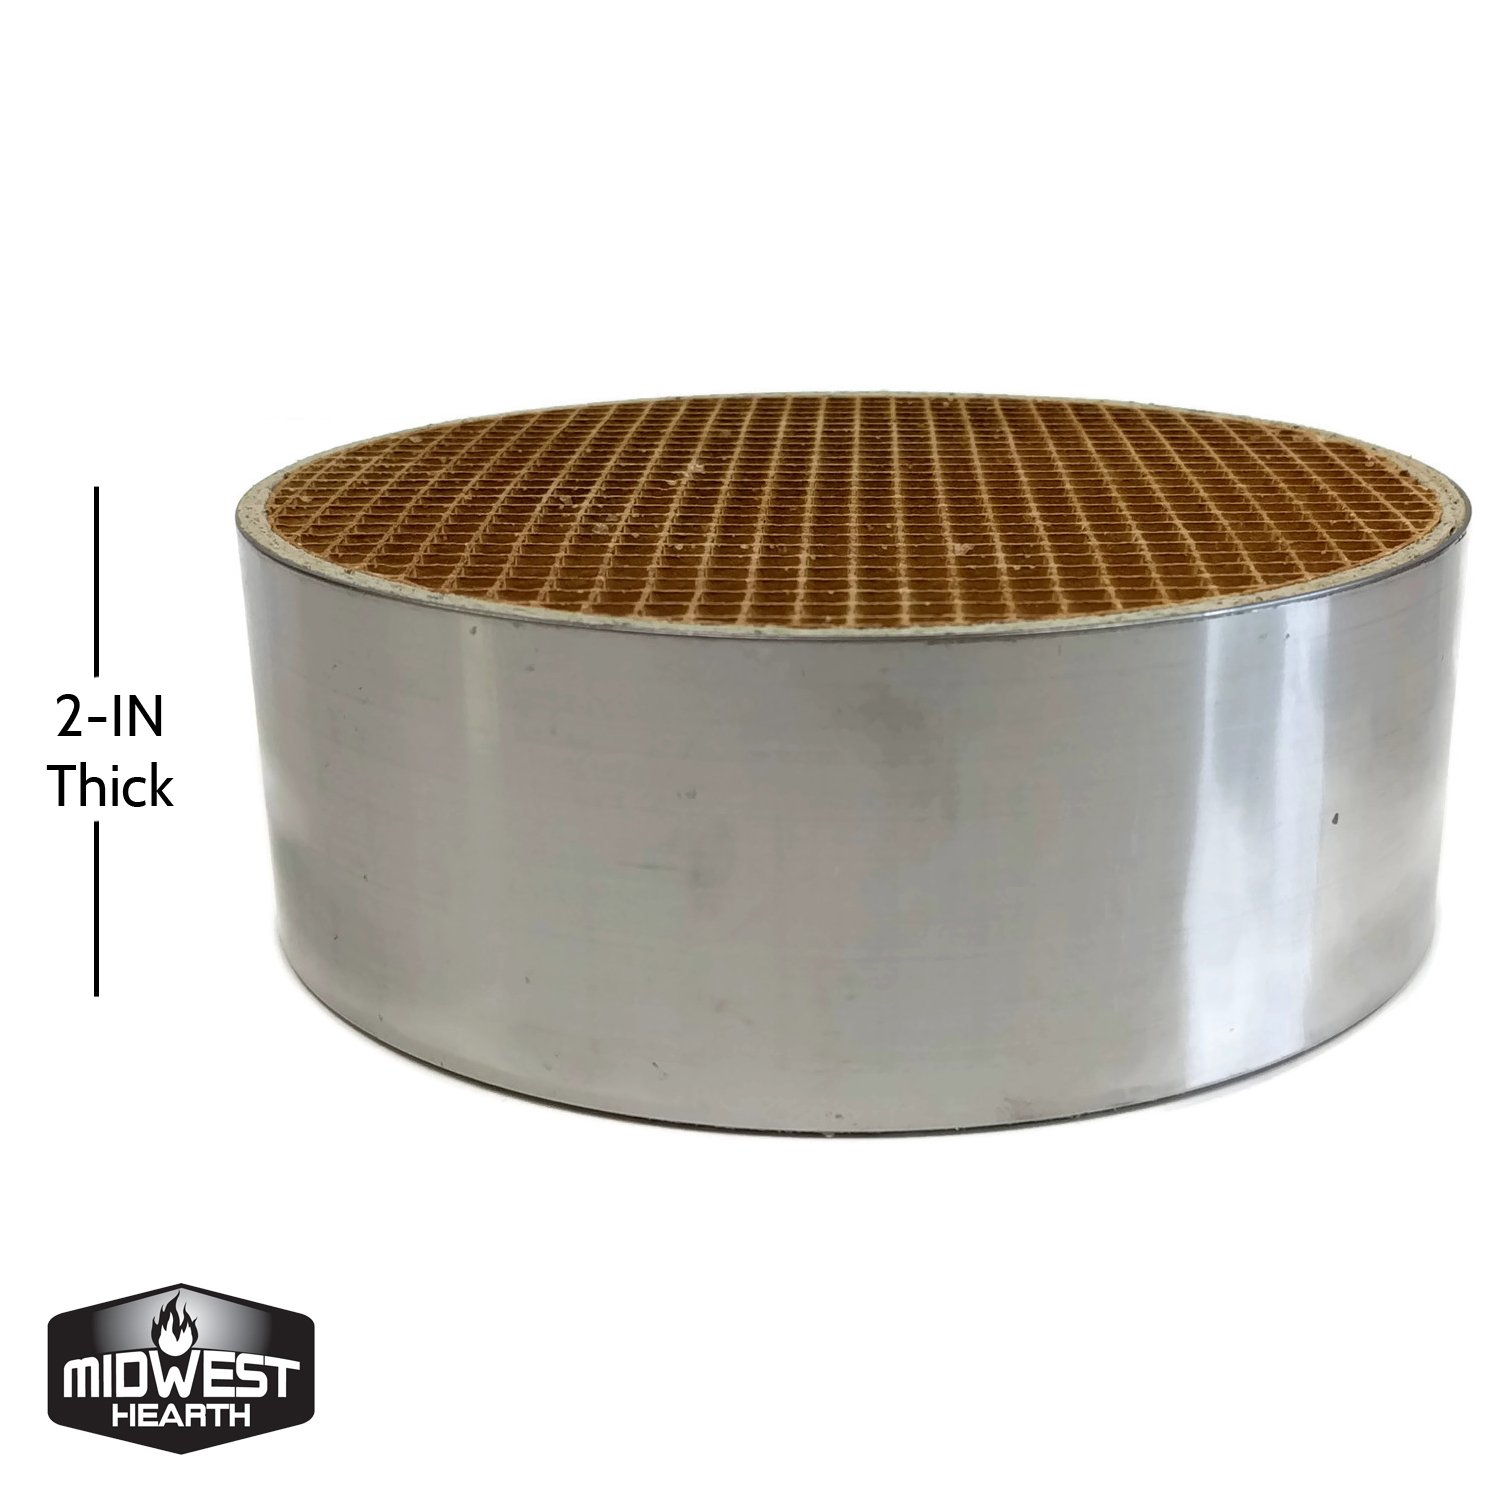 Midwest Hearth Wood Stove Catalytic Combustor Replacement